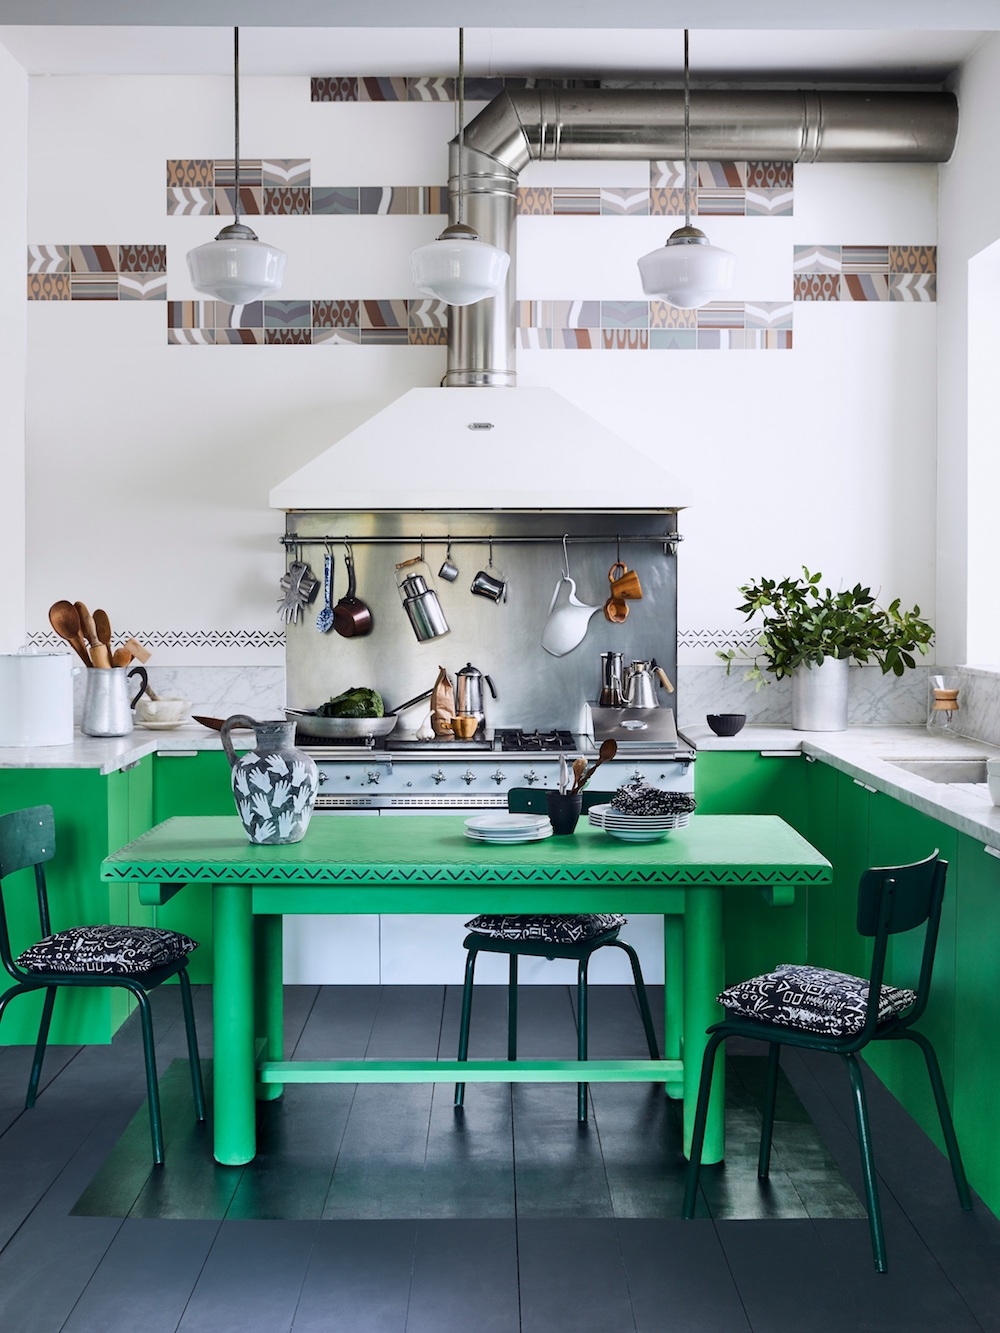 Annie Sloan - Kitchen - Chalk Paint in Antibes Green, Graphite floorboards with Gloss Lacquer detail - Lifestyle - Portrait.jpg